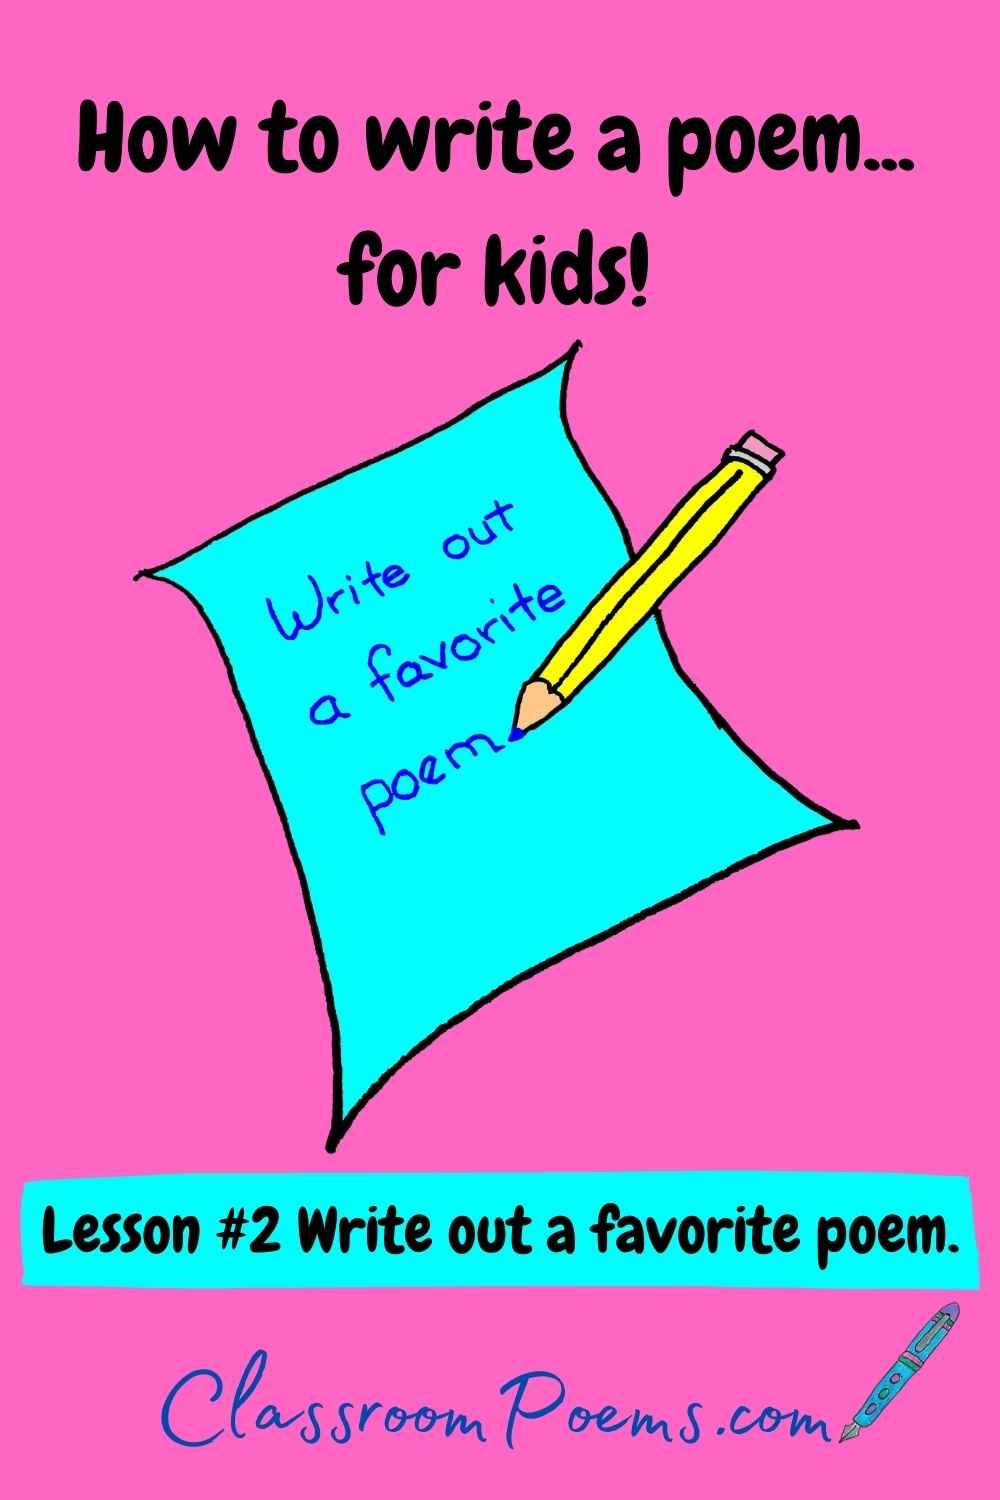 How to teach poetry to kids. Write out a favorite poem.